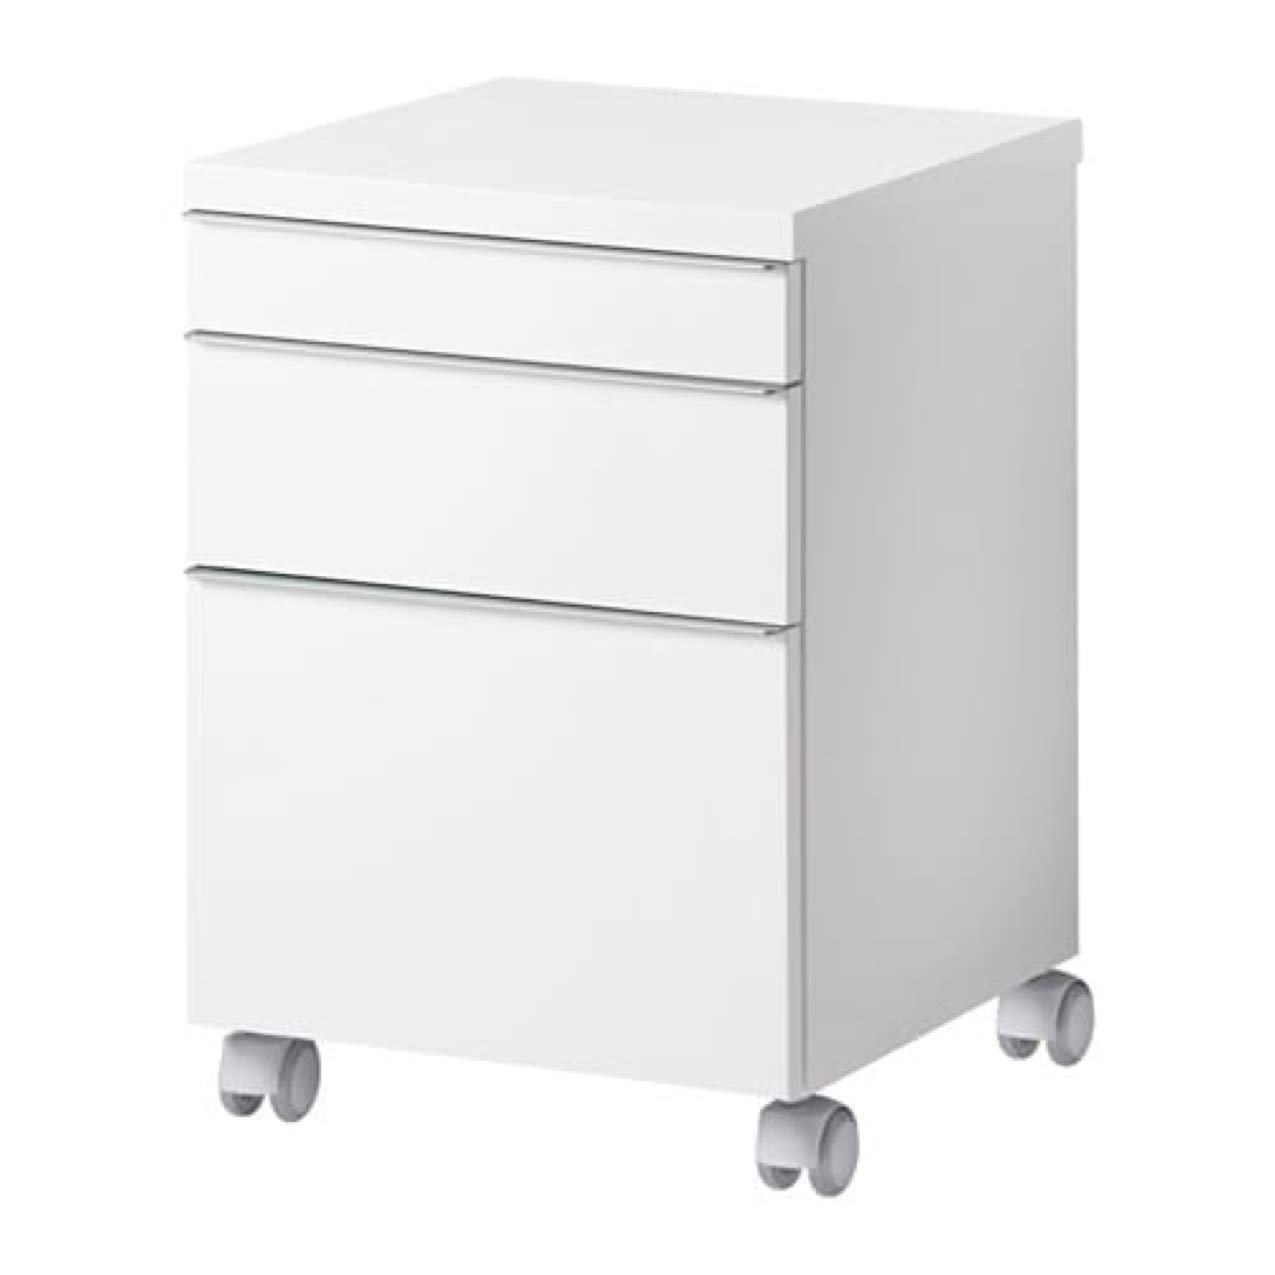 Amazon.com: IKEA Besta Burs Drawer Unit on Casters High ...